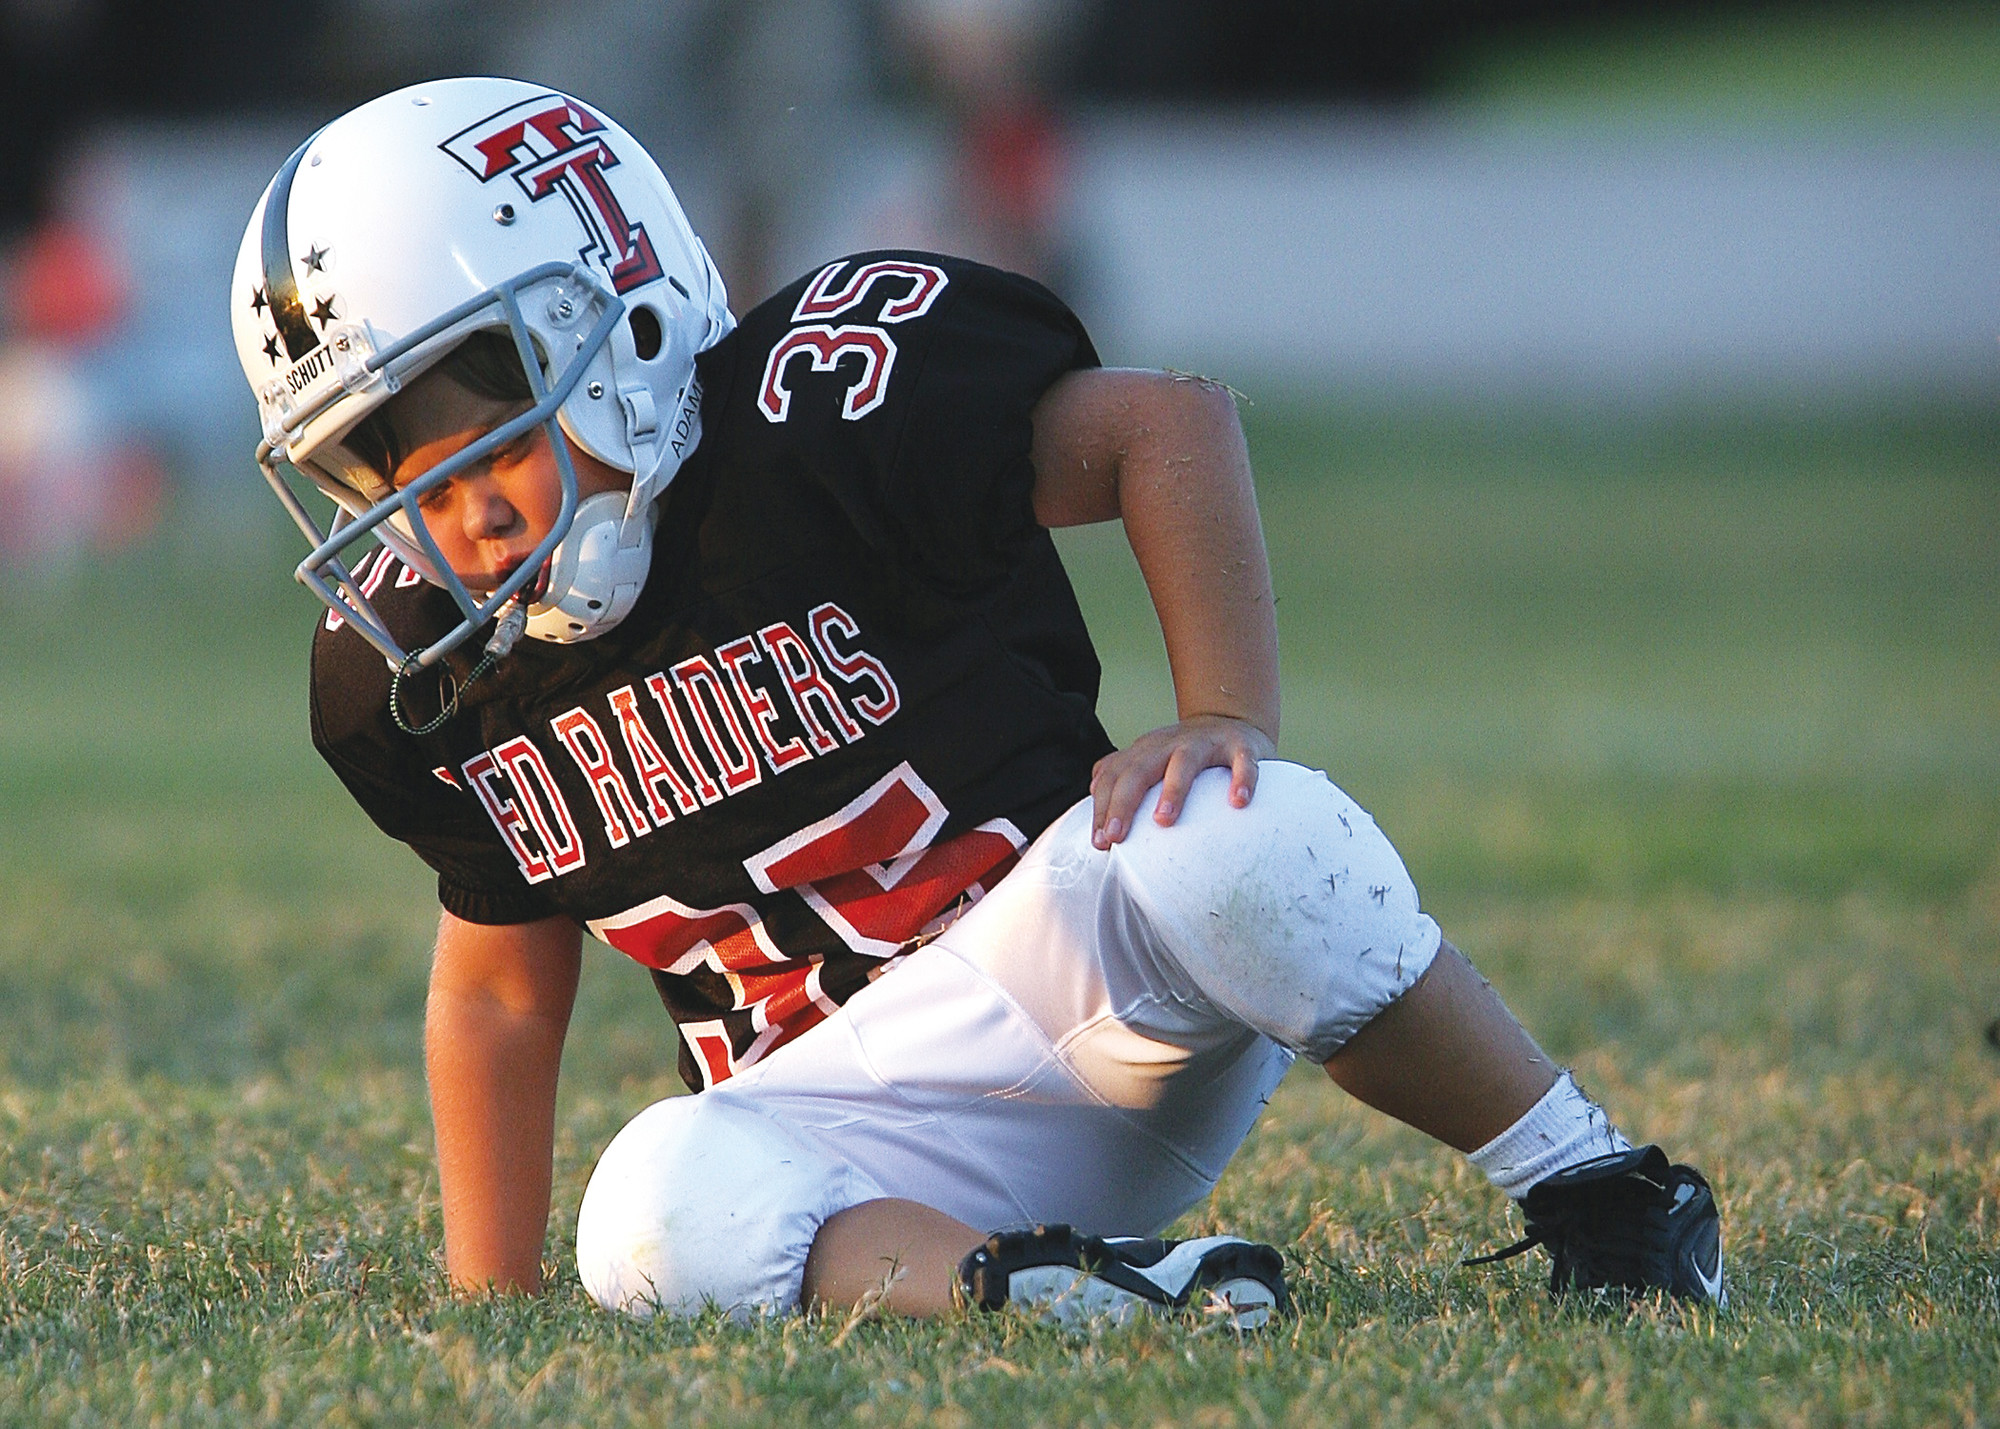 New Concussion Recommendations For Kids >> New Advice On Kids Concussions Calls For Better Tracking The